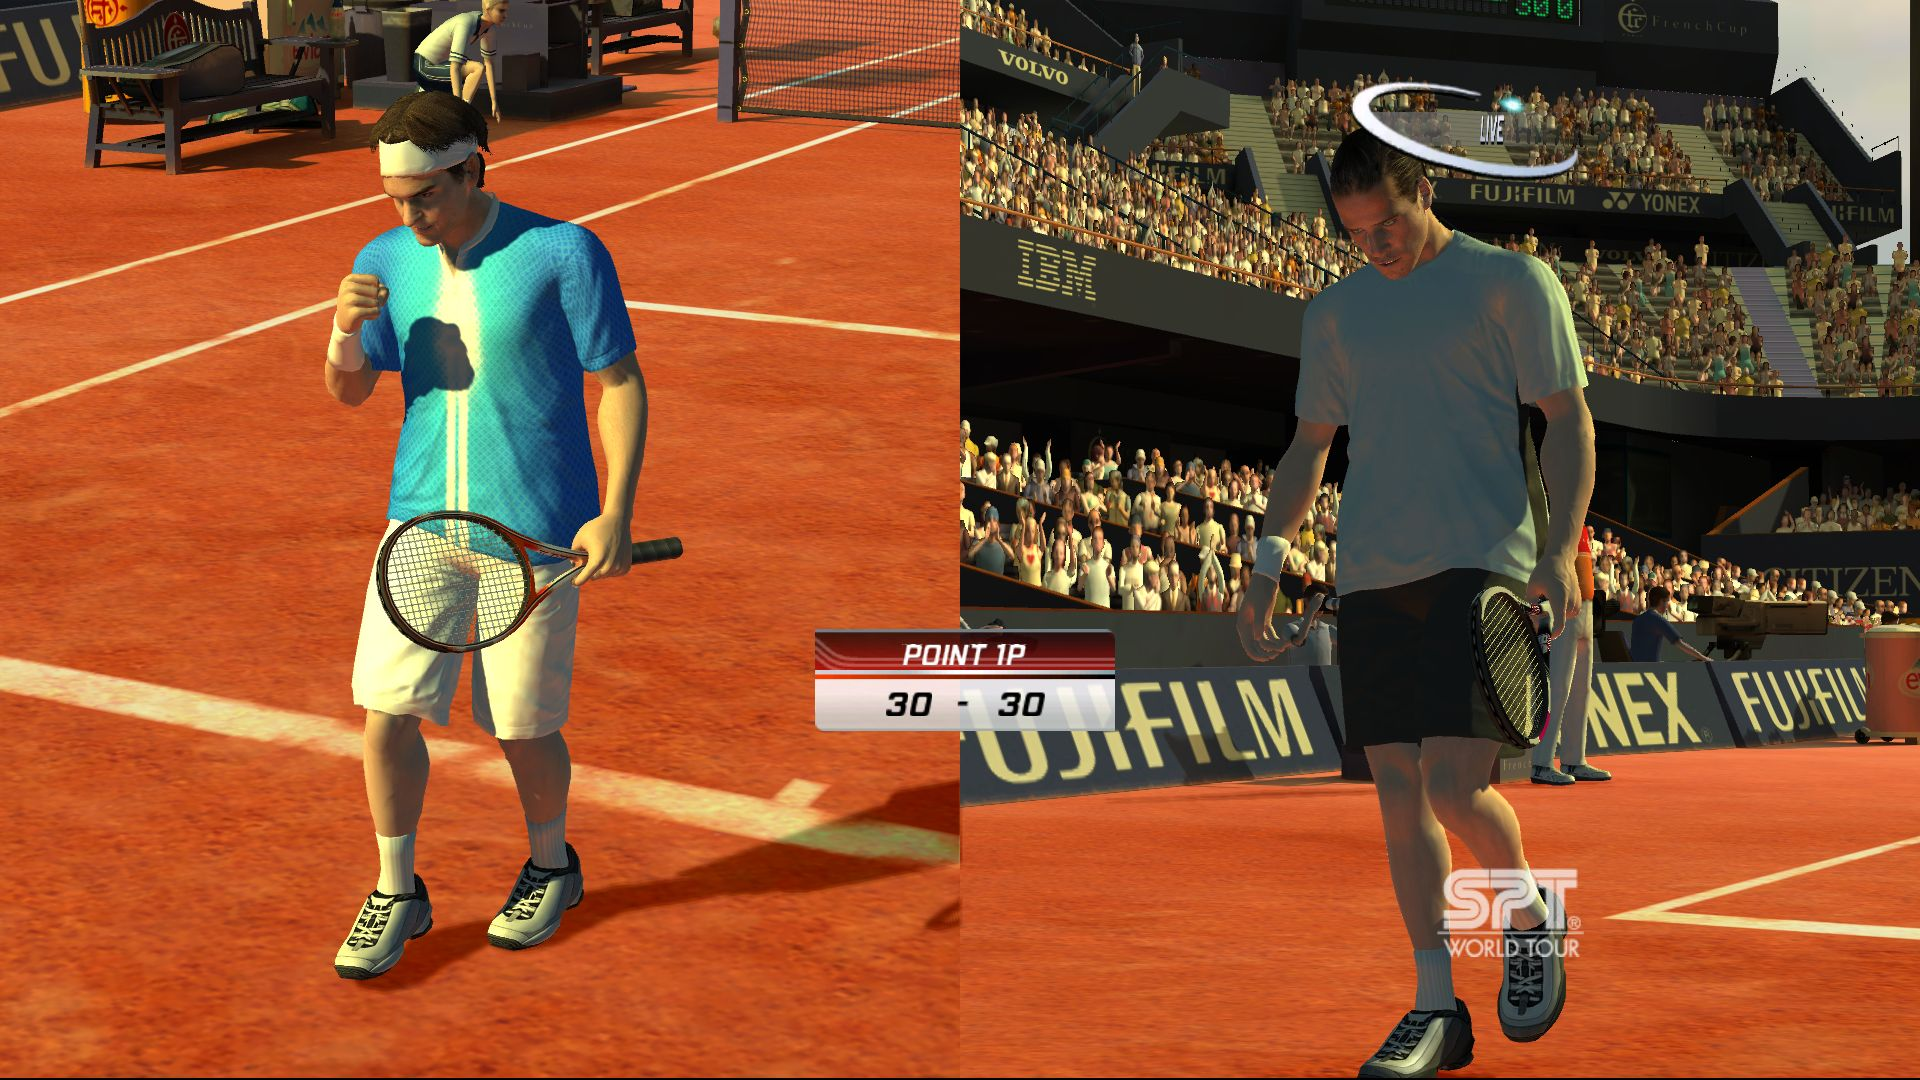 virtua tennis 3 vt3